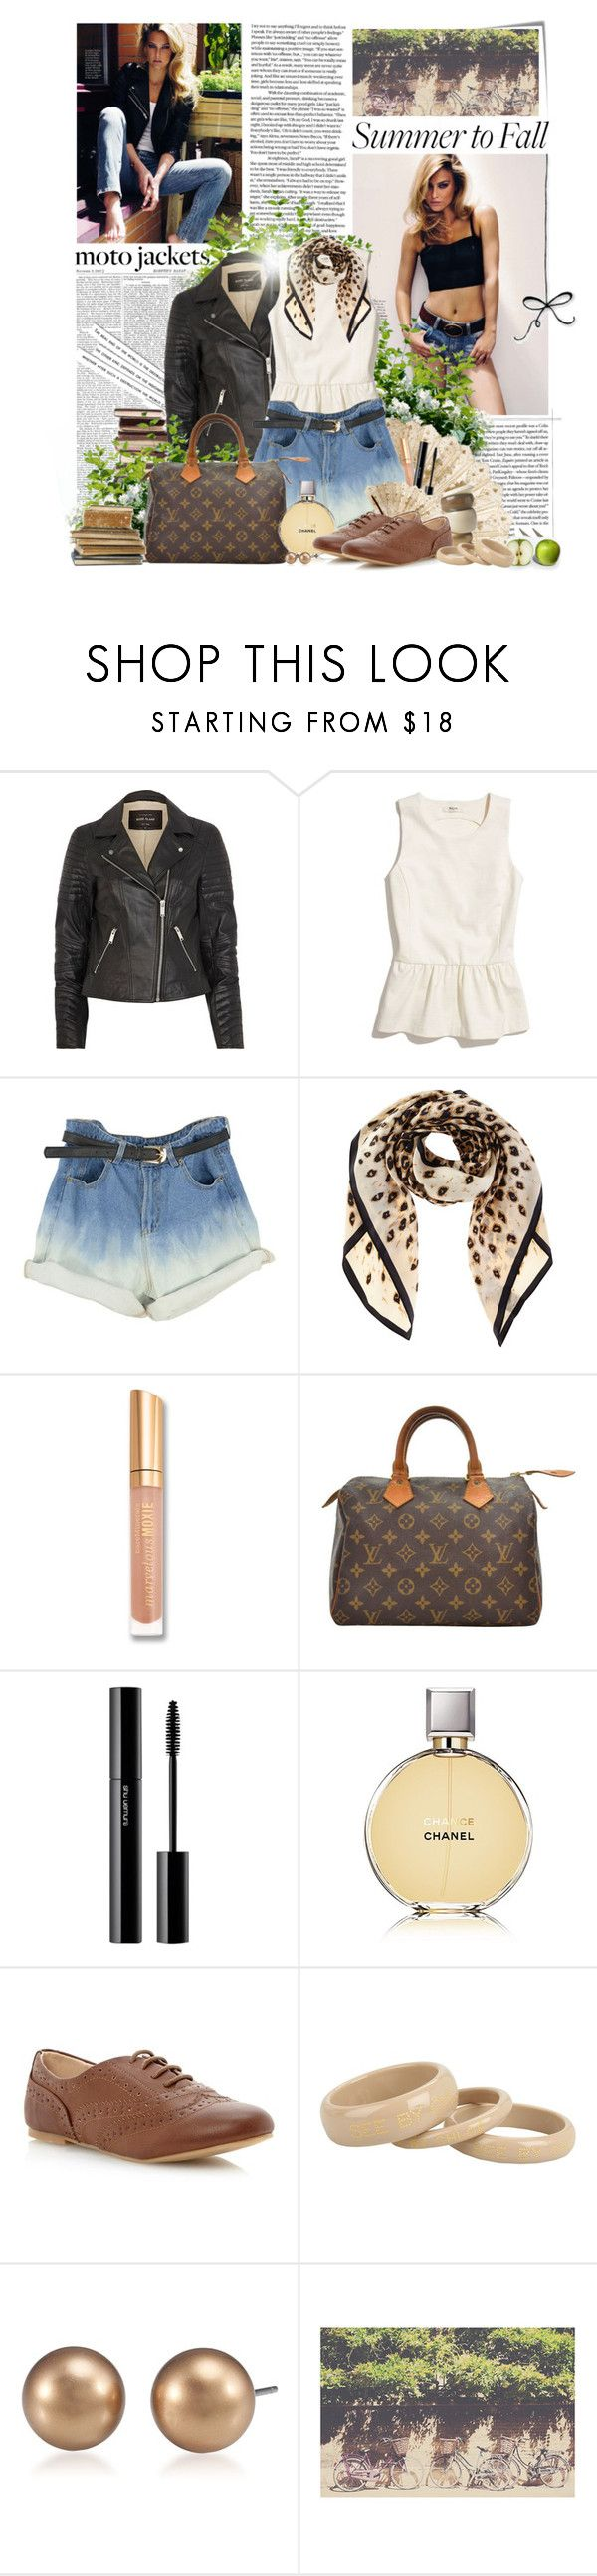 """Summer to Fall: Moto Jackets"" by neny-6 ❤ liked on Polyvore featuring Post-It, River Island, Madewell, Oasis, Bare Escentuals, Louis Vuitton, House of Fraser, shu uemura, Chanel and Head Over Heels by Dune"